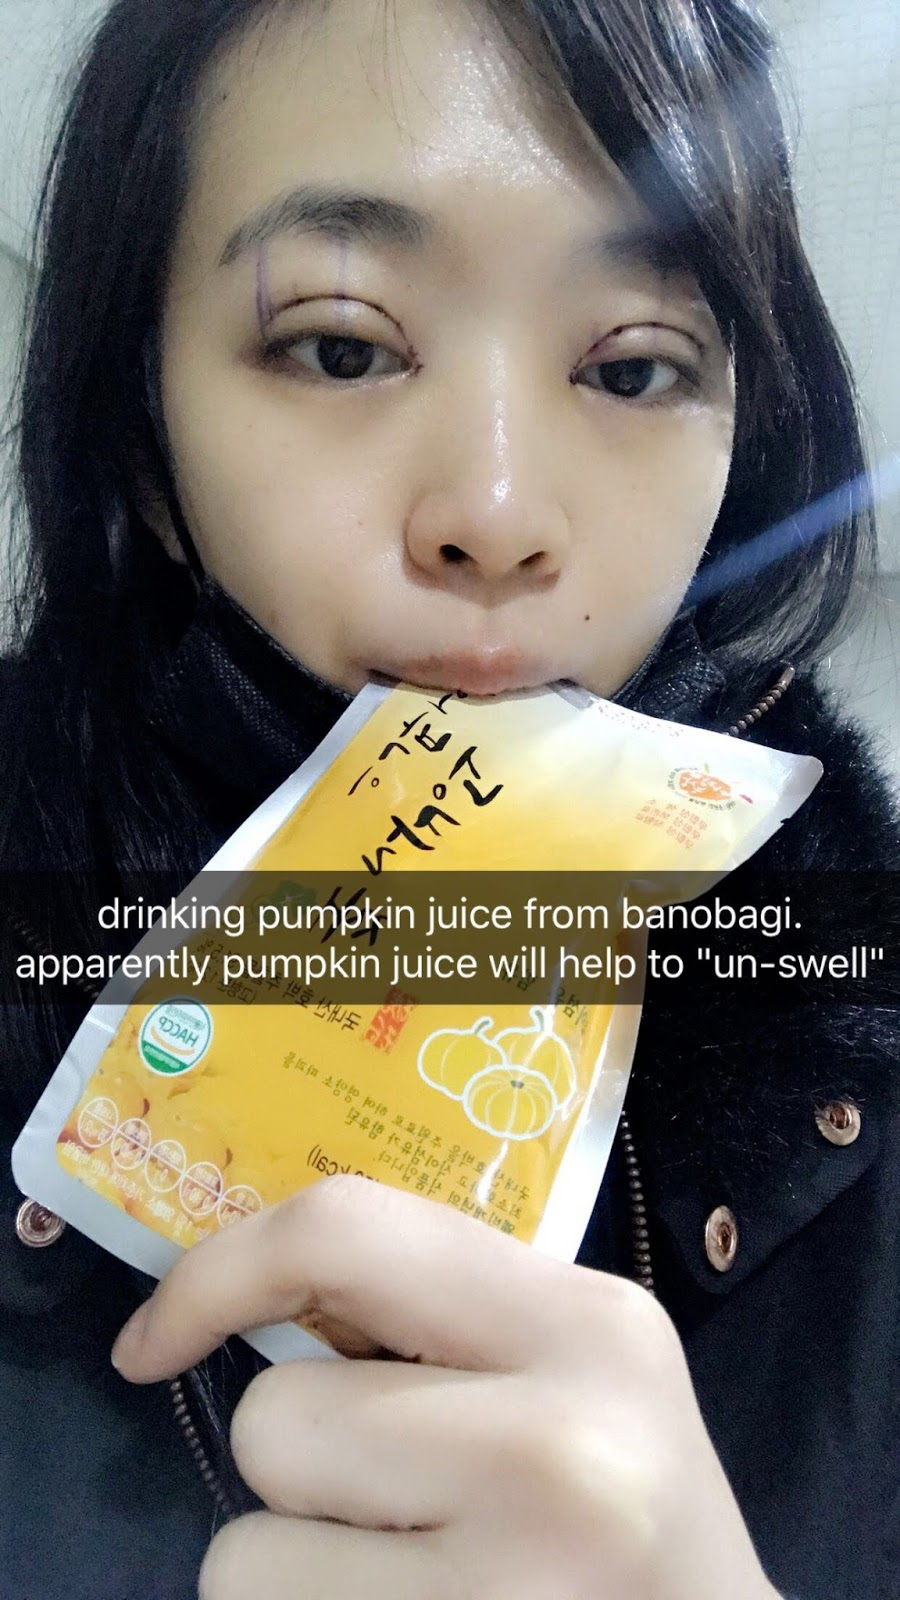 I Was Recommended To Drink 23 Packets Of Pumpkin Juice Everyday As It Will  Help To Reduce The Swelling So I Drank 1 Every Morning And Brought 2  Packets